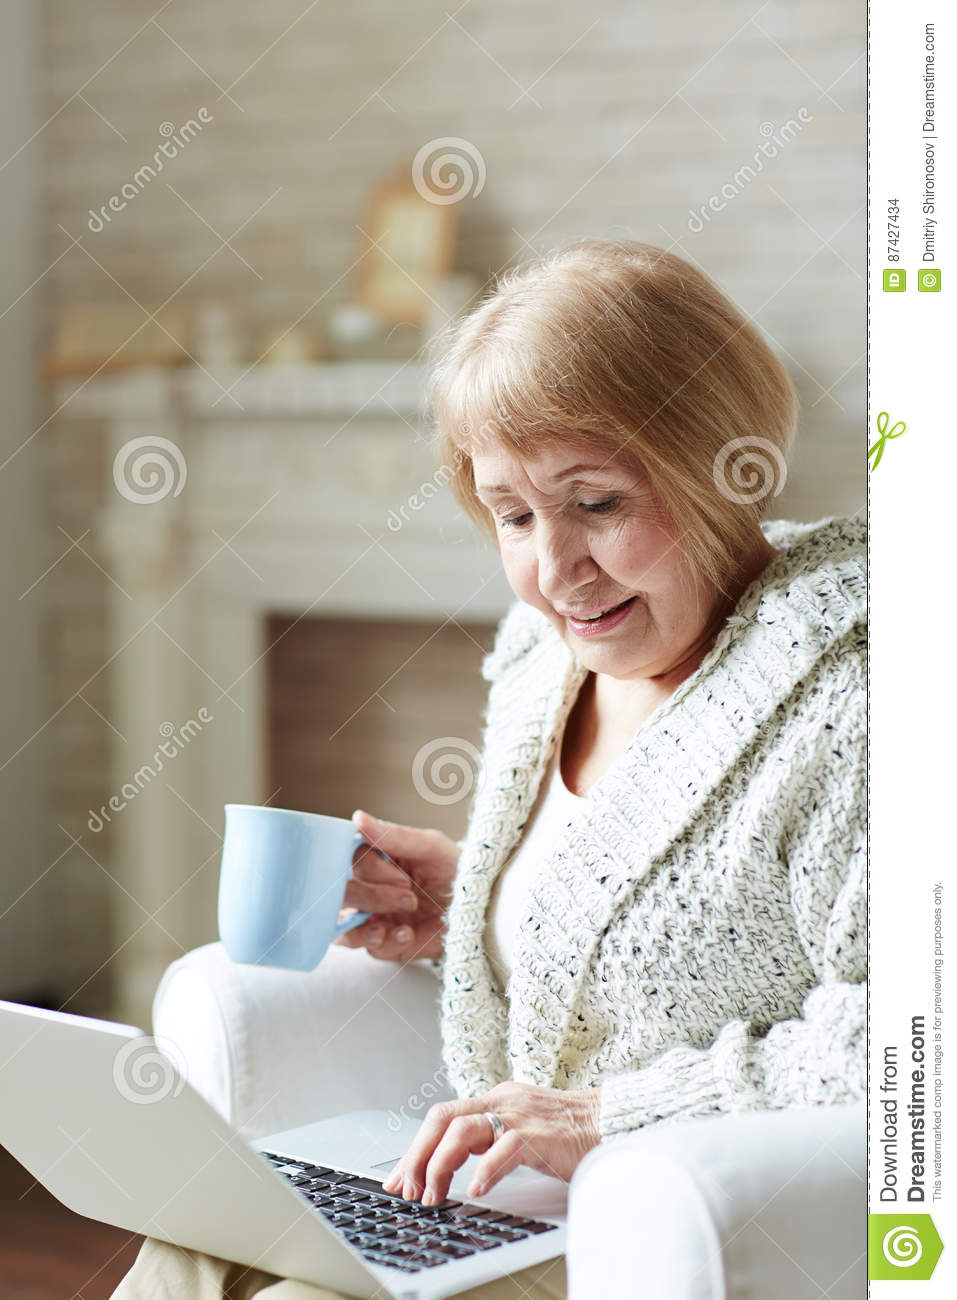 Chat With Grannies For Free No Sign